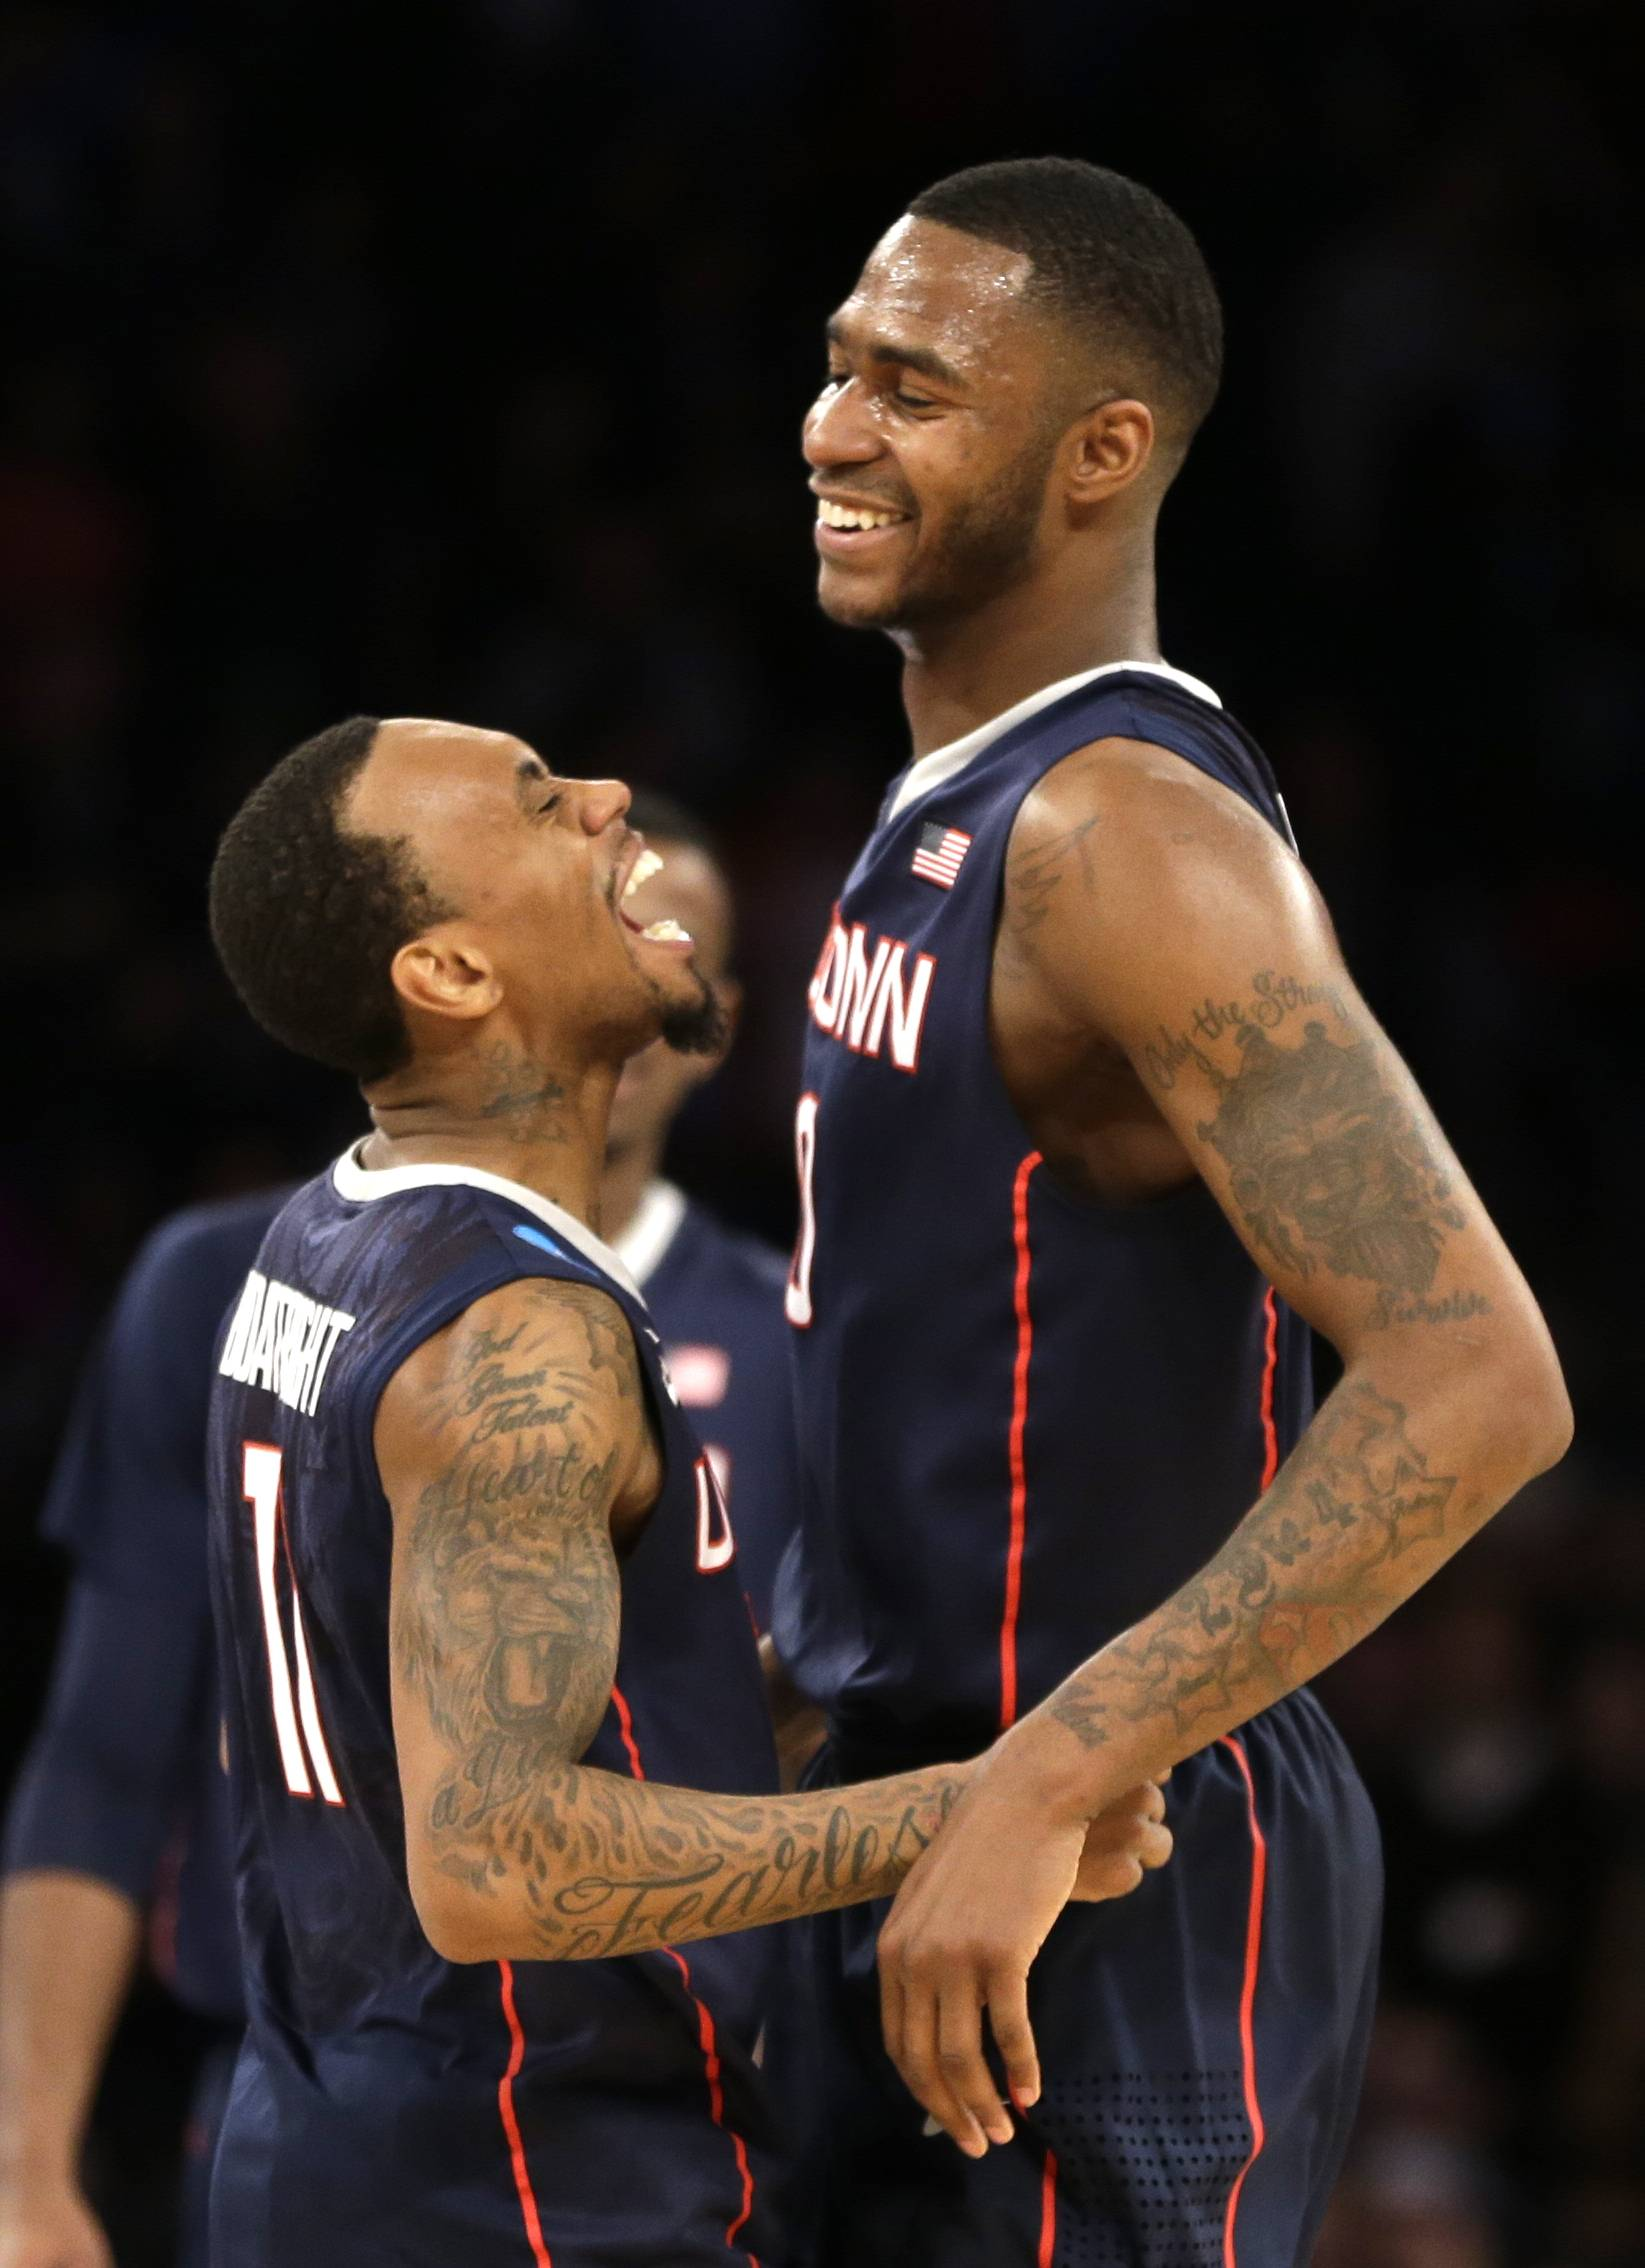 Connecticut's Ryan Boatright, left, and Phillip Nolan celebrate after defeating Michigan State in the regional final at the NCAA college basketball tournament on Sunday, March 30, 2014, in New York.